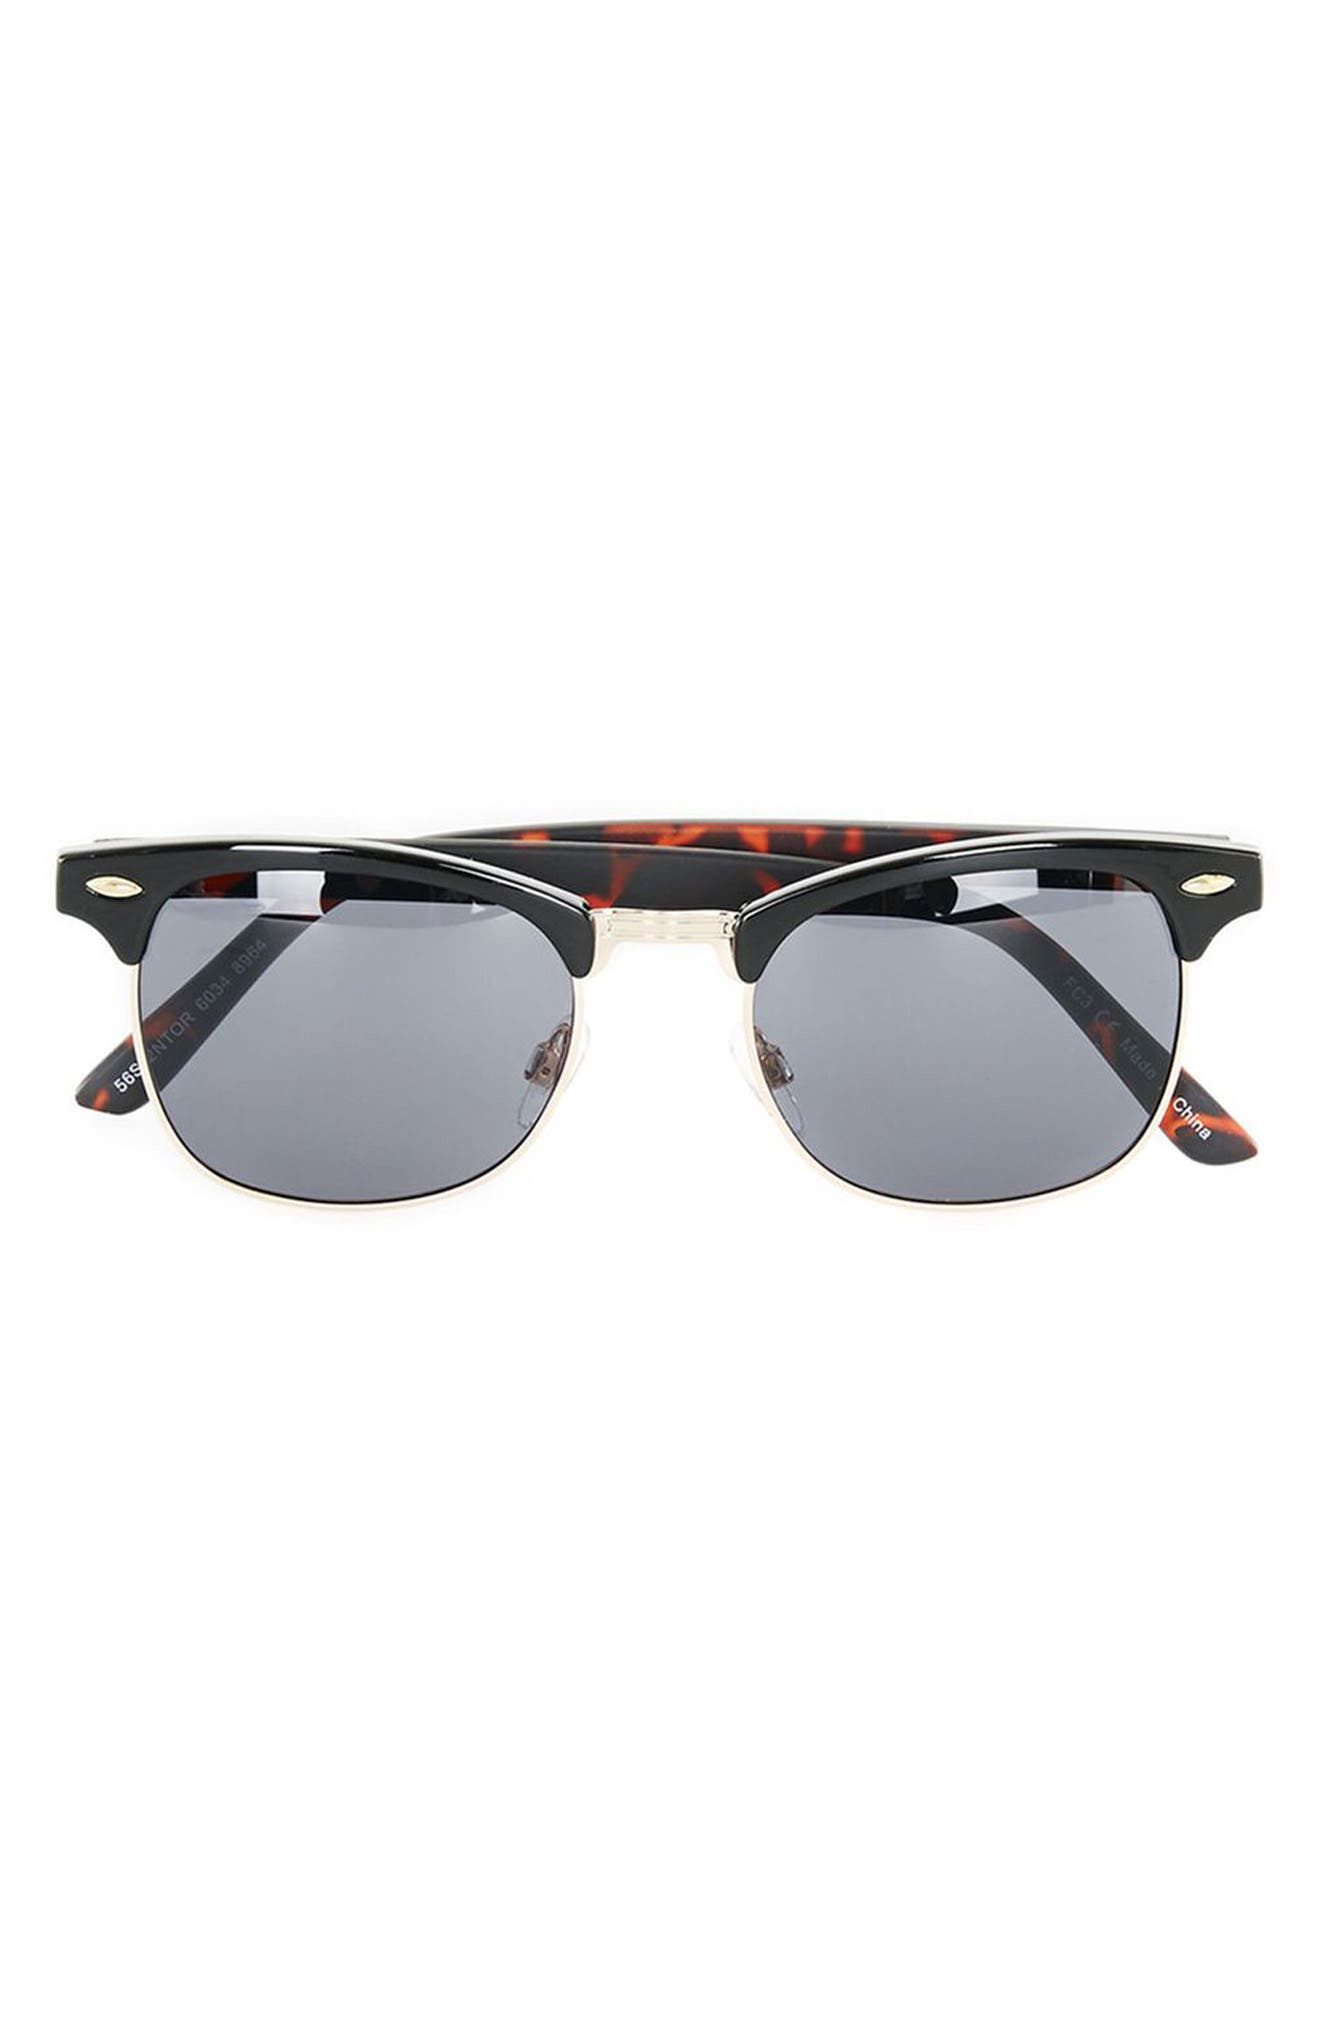 Clubmaster 50mm Sunglasses,                             Main thumbnail 1, color,                             200